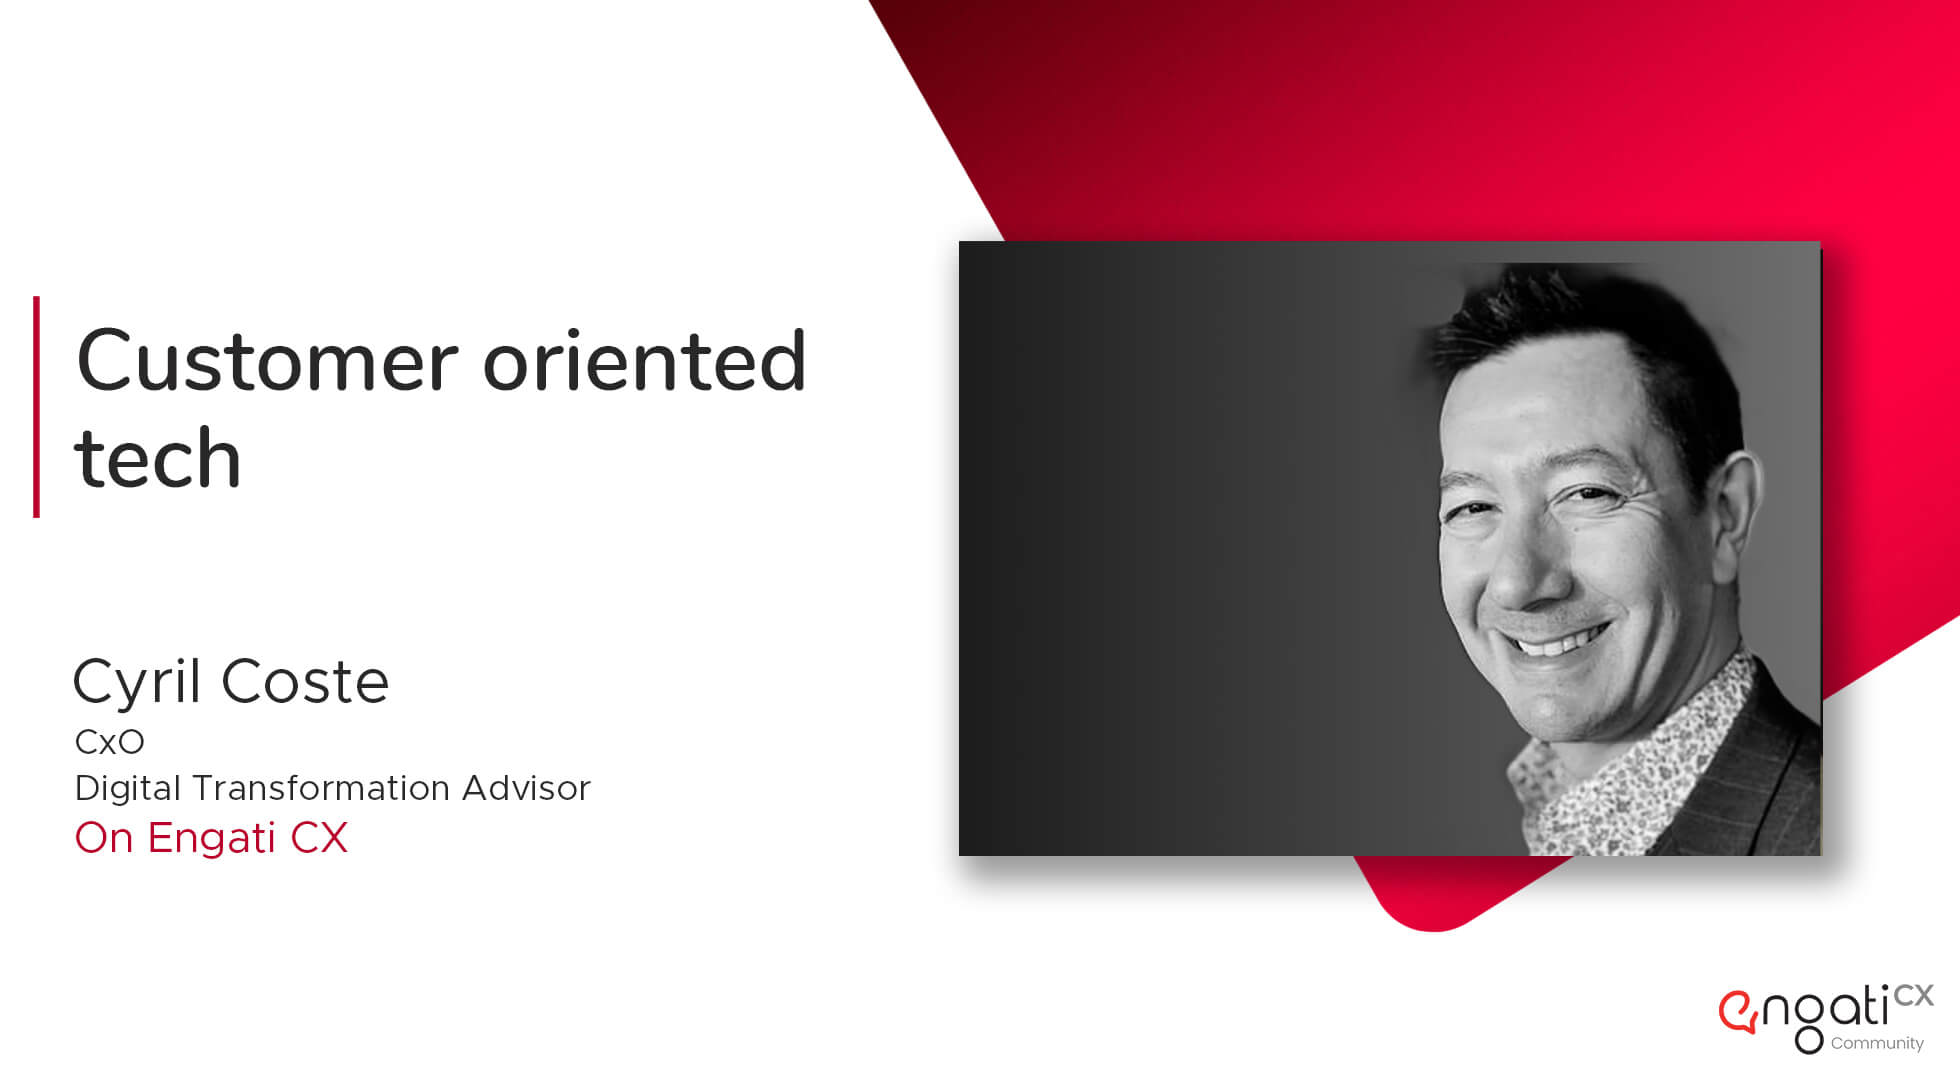 Customer oriented tech | Cyril Coste | Engati CX